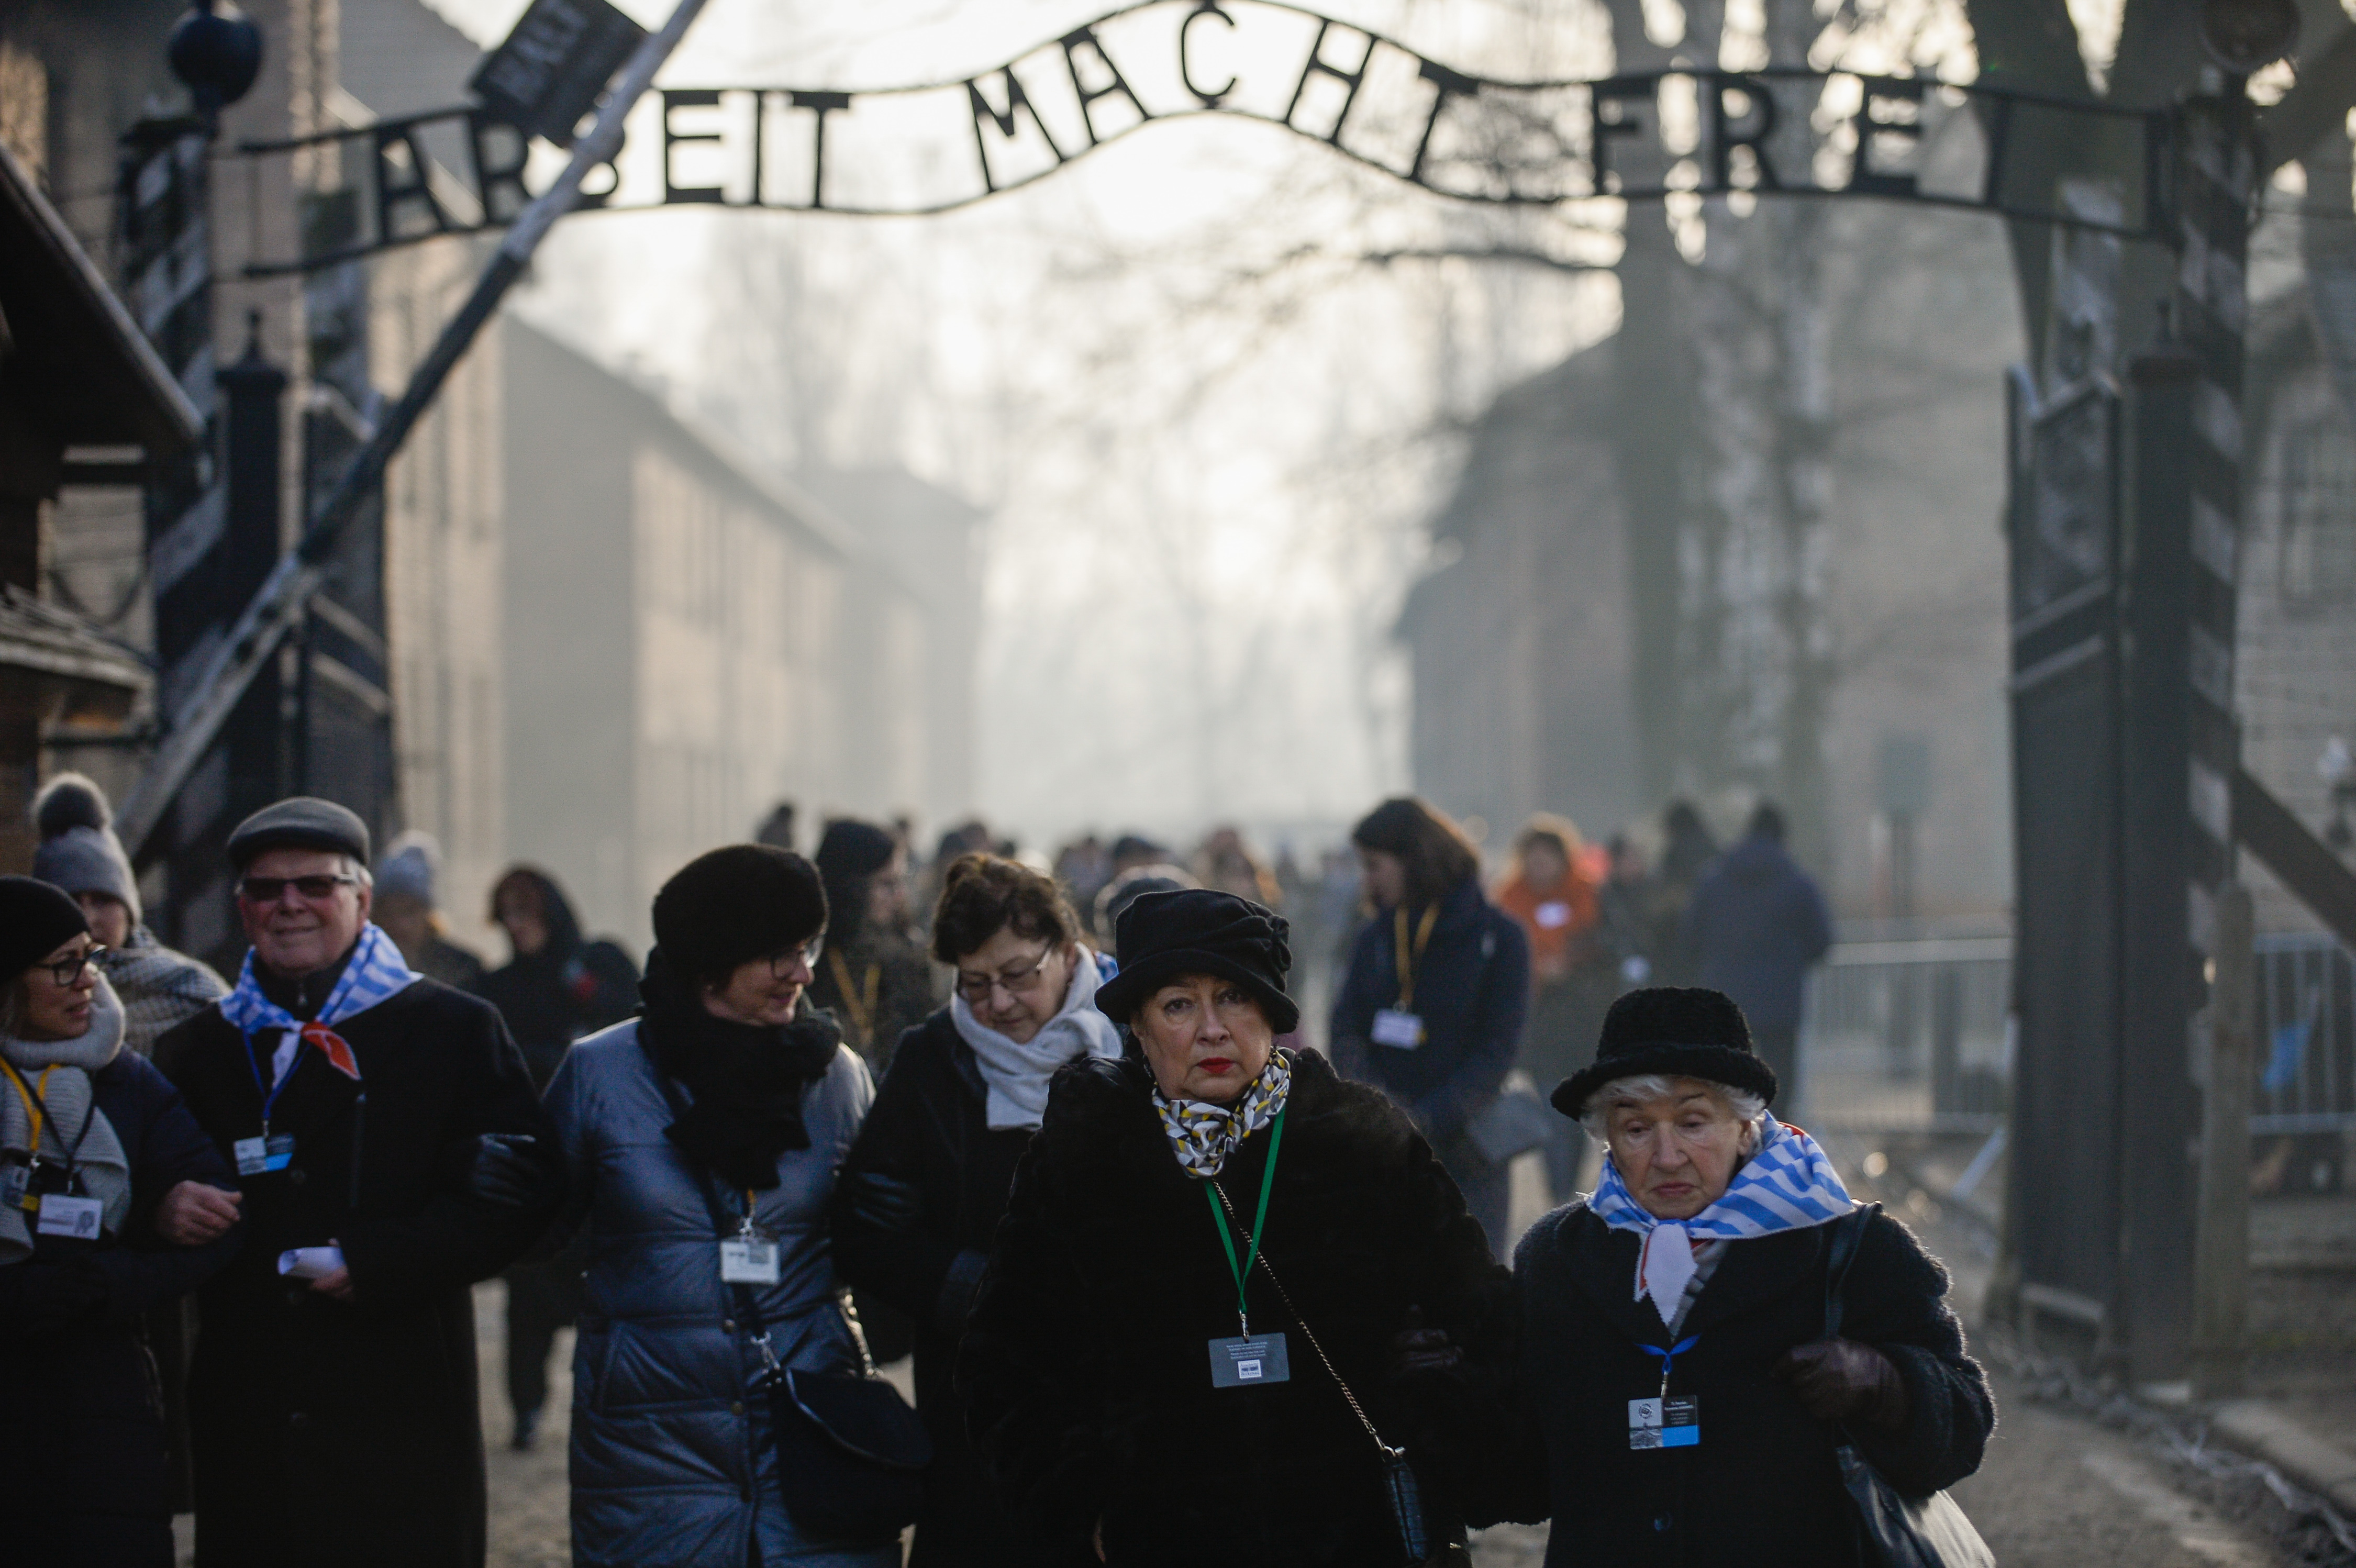 OSWIECIM, POLAND - JANUARY 27: Survivors of the Auschwitz concentration camp walk by the main gate bearing the motto Arbeit Macht Frei at the former Auschwitz I site on January 27, 2020 in Oswiecim, Poland. International leaders as well as approximately 200 survivors and their families are gathering at Auschwitz today to commemorate the 75th anniversary of the camp's liberation. The Nazis killed an estimated one million people at the camp during the World War II occupation of Poland by Nazi Germany. (Photo by Omar Marques/Getty Images)